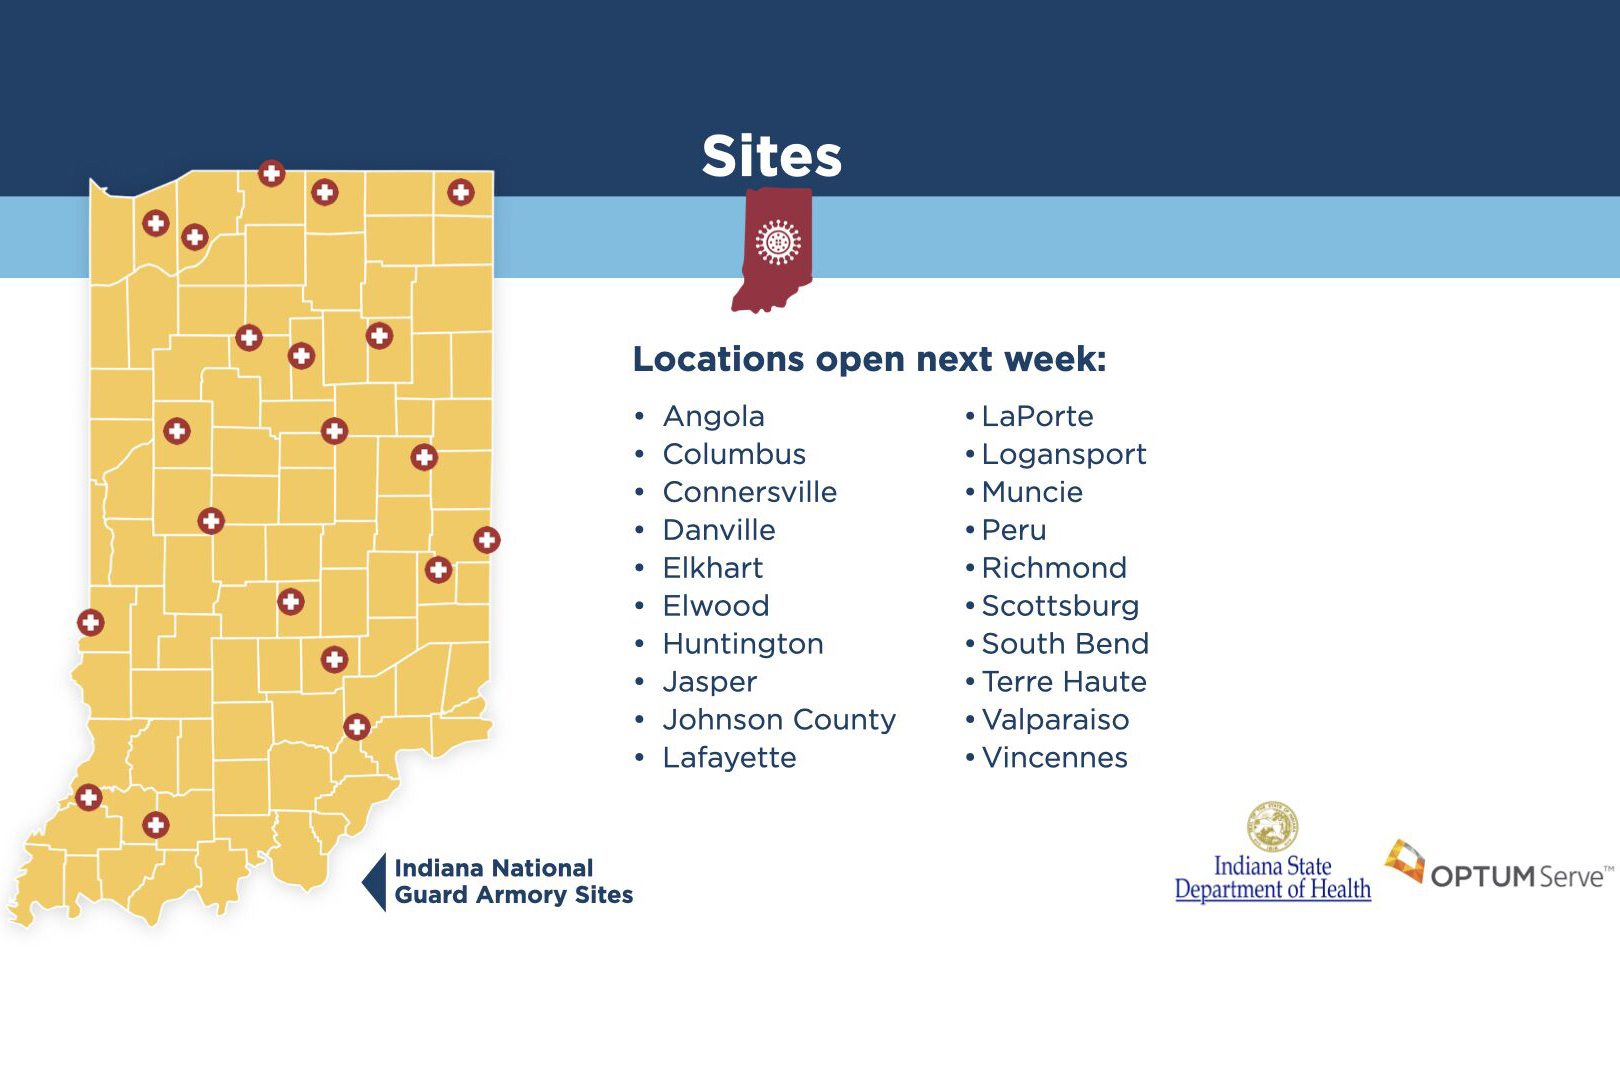 OptumServe Health Services will set up 20 COVID-19 testing sites around the state within the next week, with 50 total sites within two weeks.